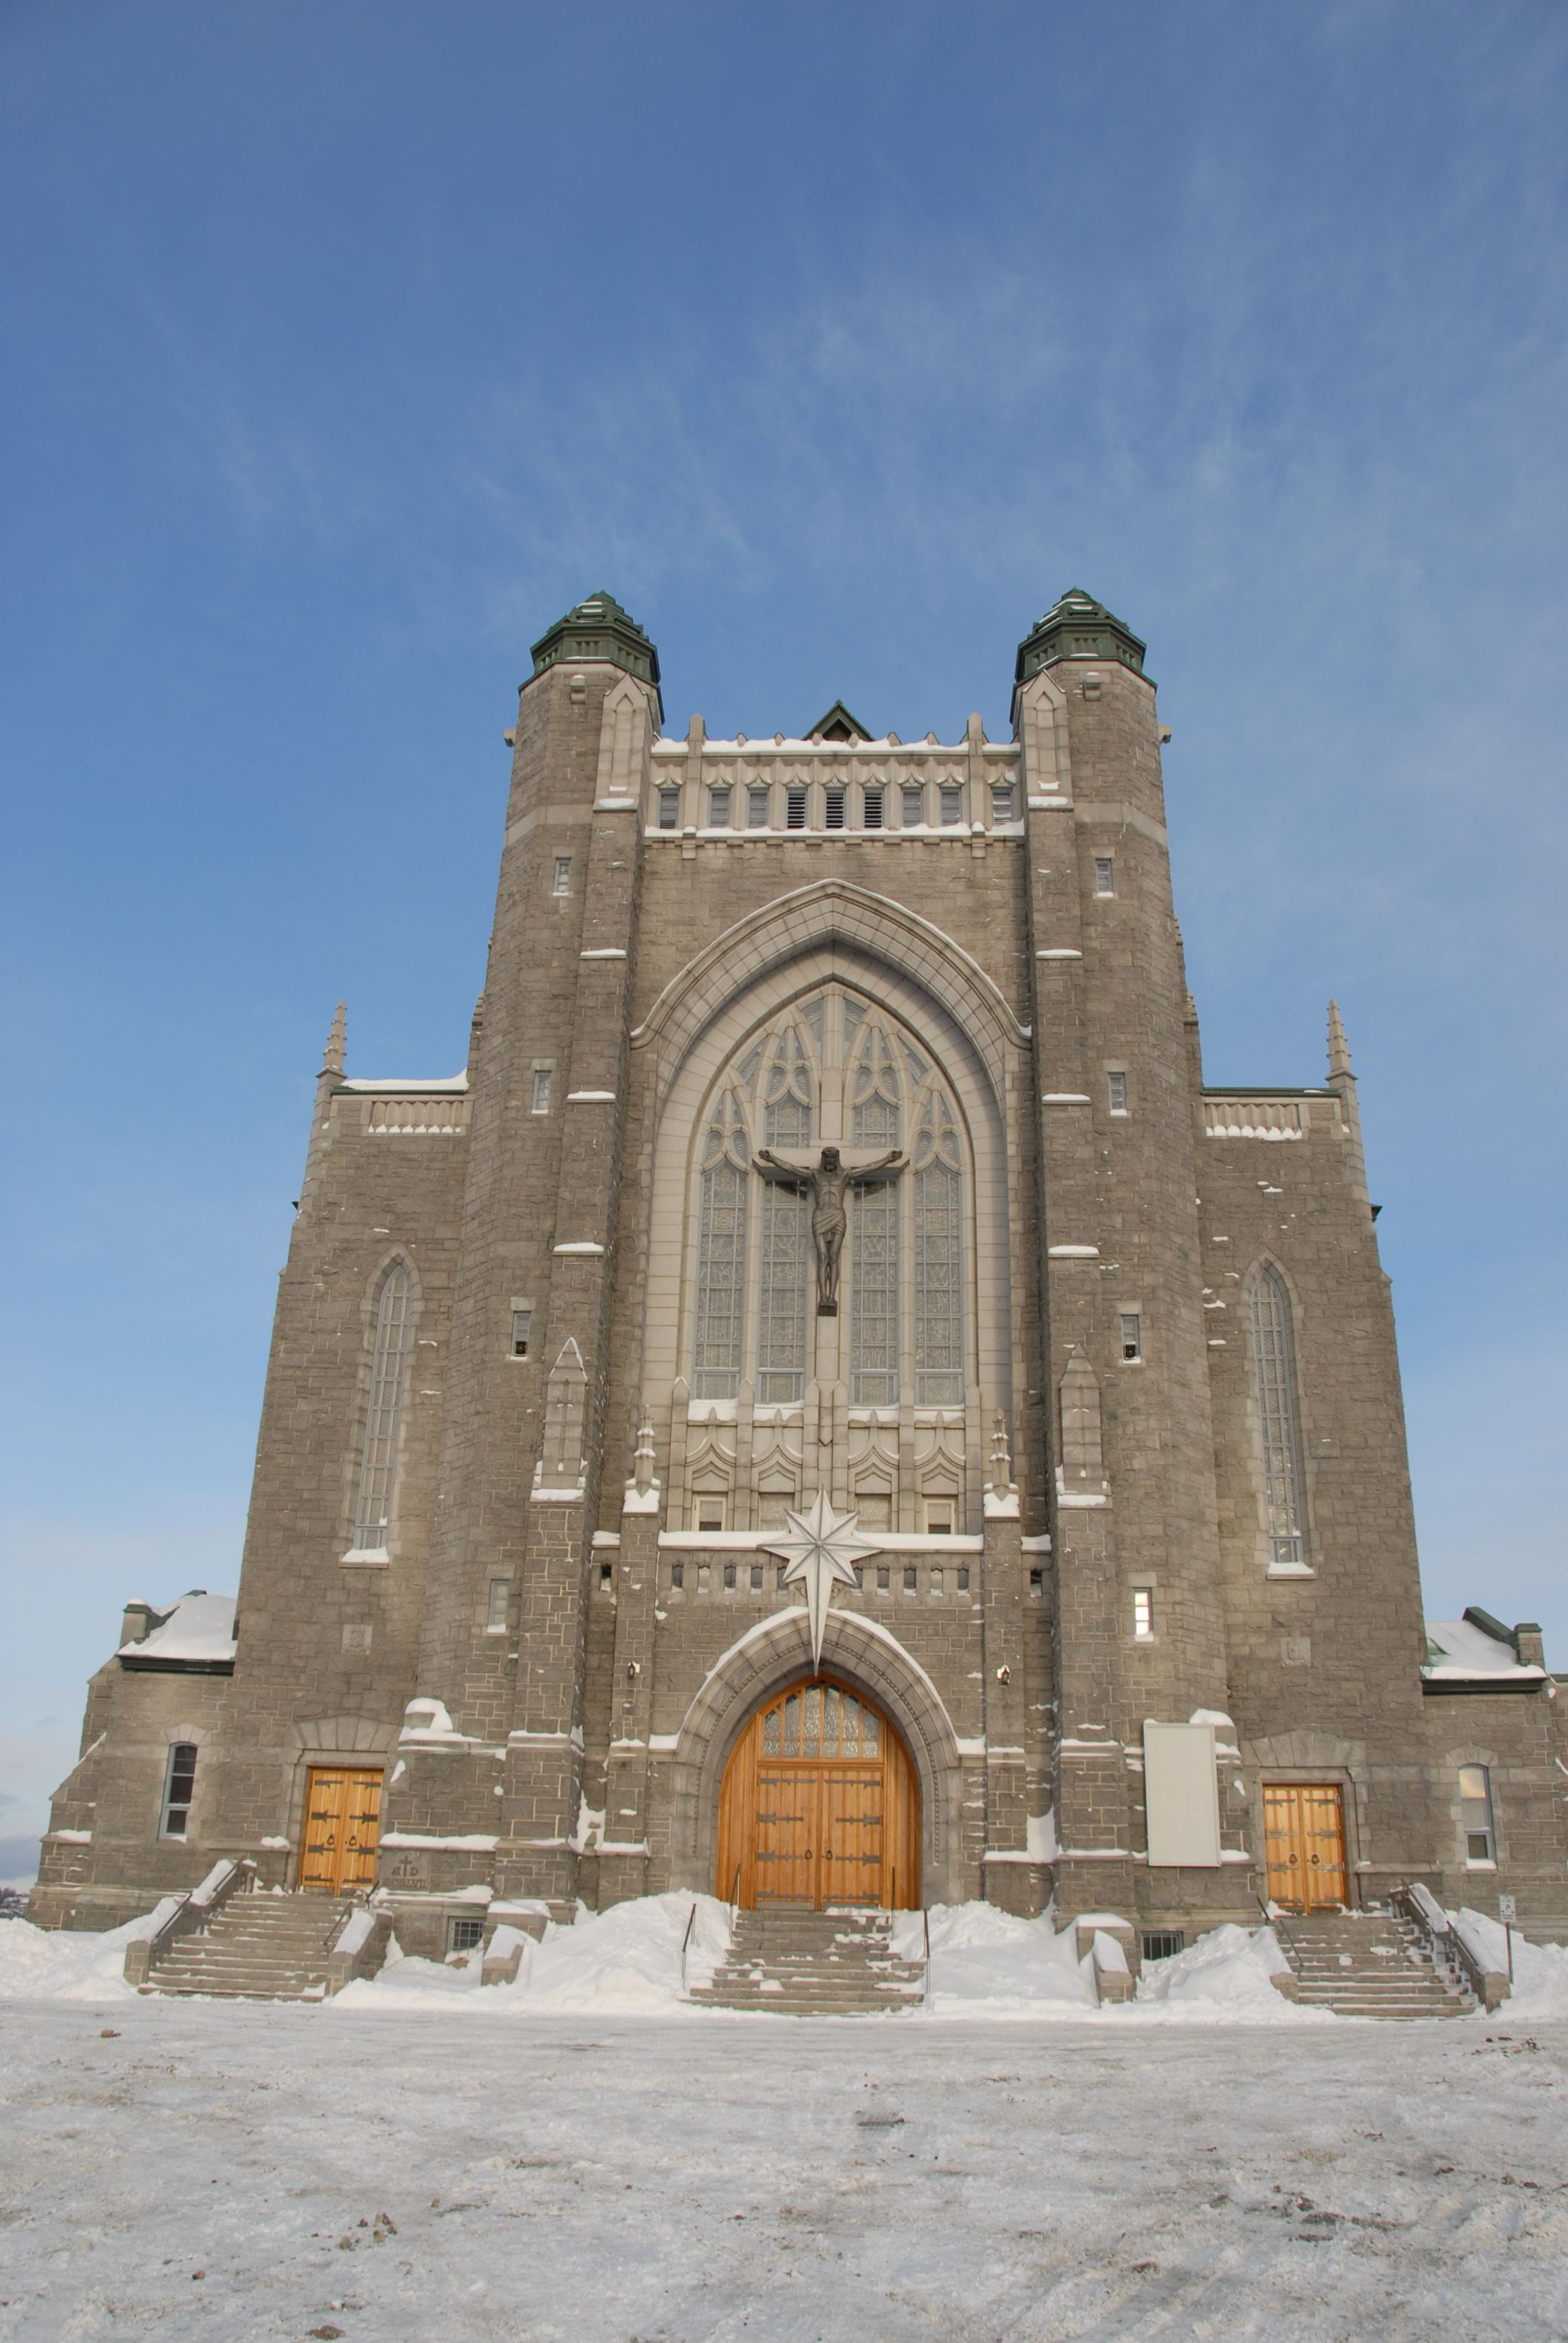 St. Michael's Basilica-Cathedral of Sherbrooke